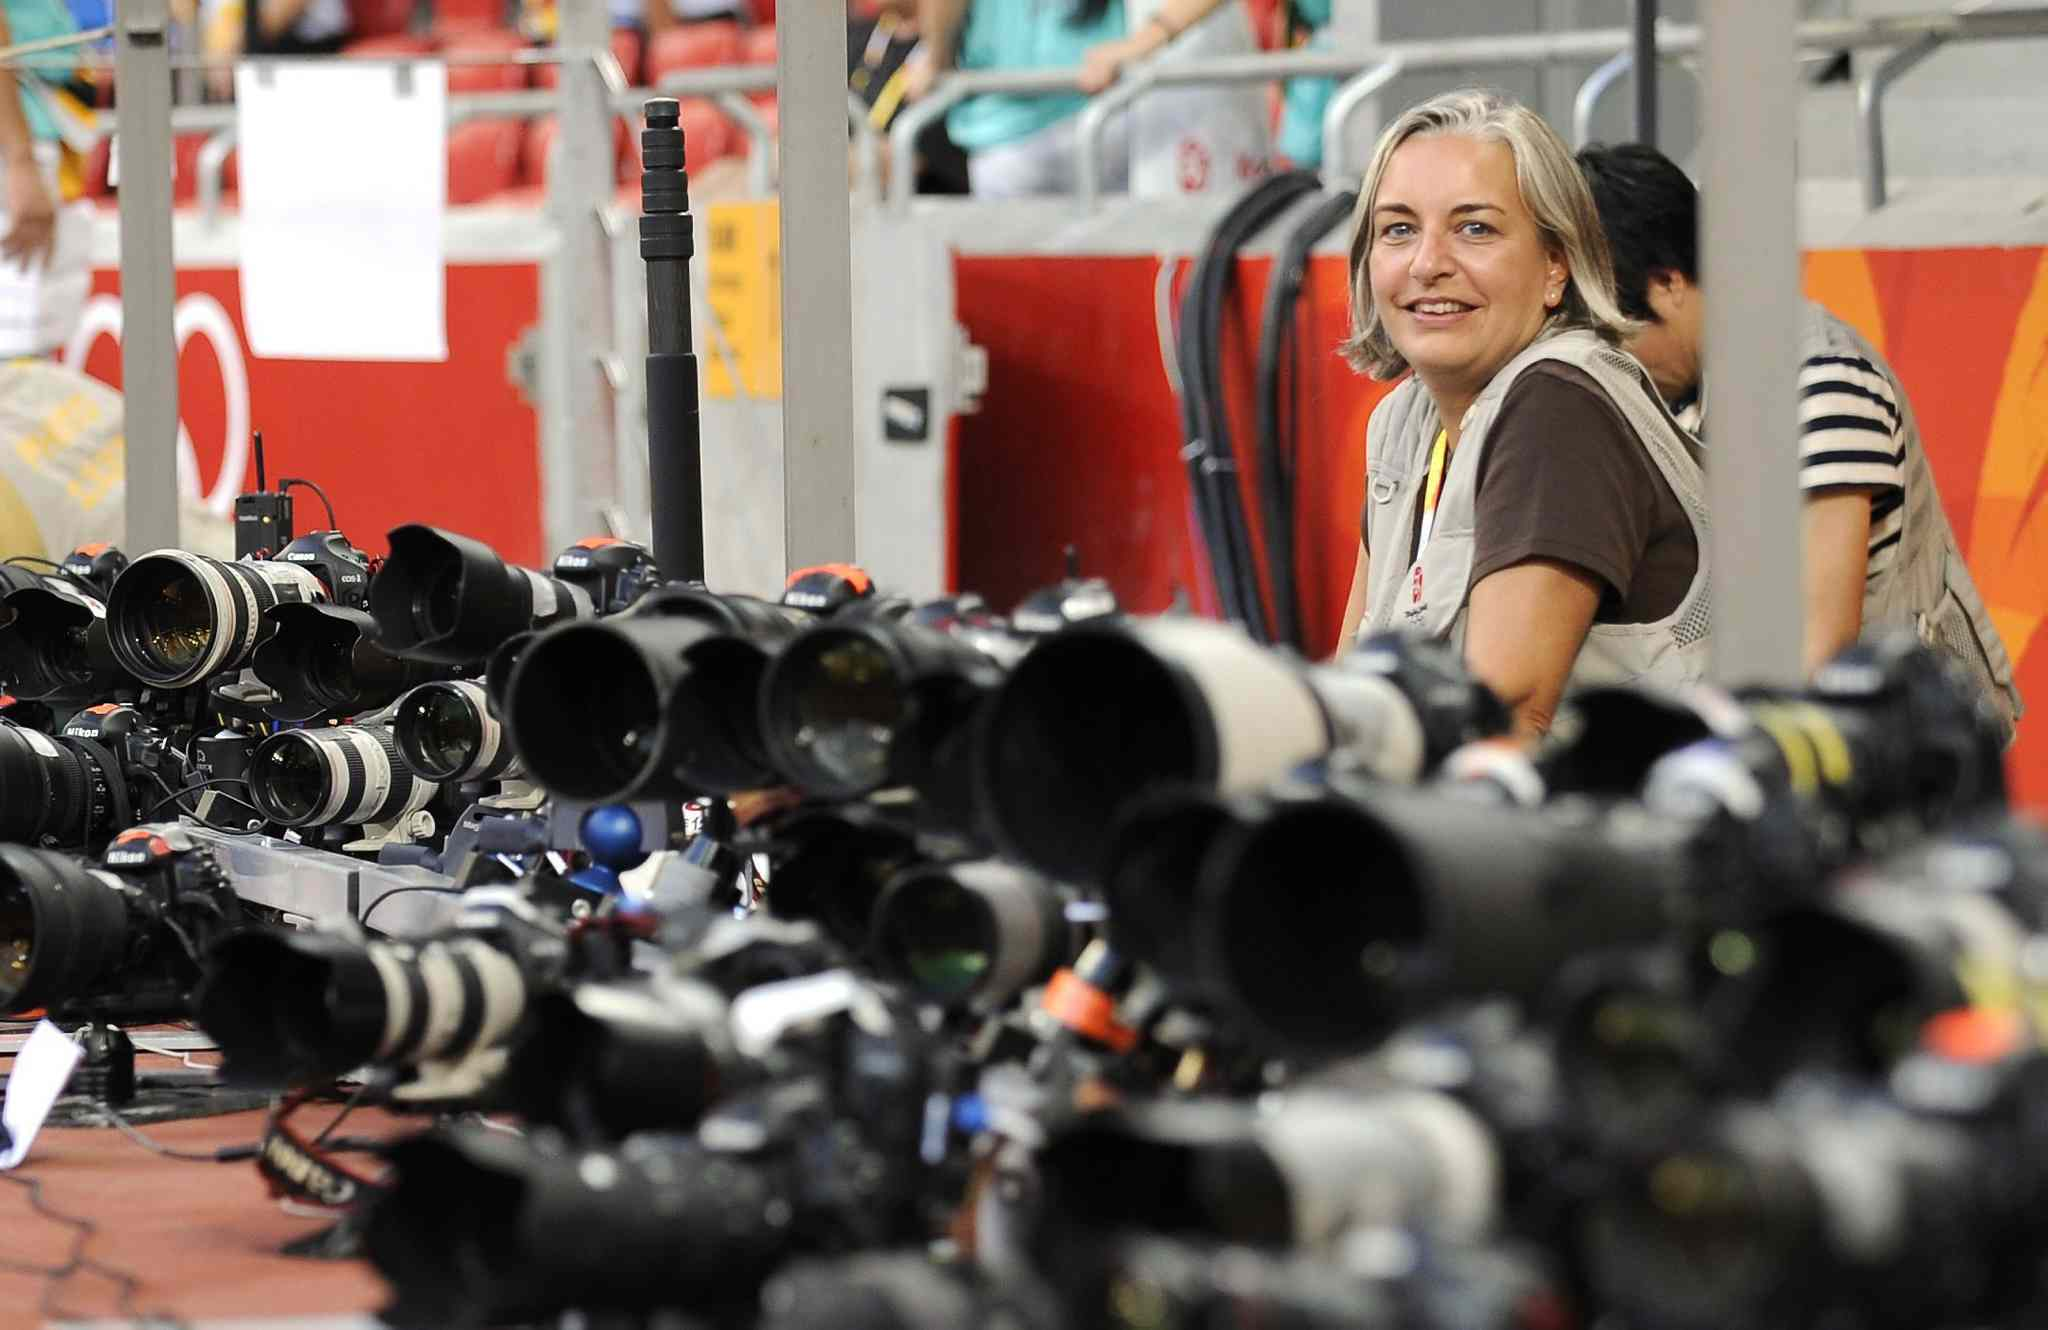 Associated Press photographer Anja Niedringhaus, 48, an internationally acclaimed German photographer, was killed and AP reporter Kathy Gannon was wounded on Friday, April 4, 2014 when an Afghan policeman opened fire while they were sitting in their car in eastern Afghanistan.  The photos that follow celebrate her remarkable photojournalism.